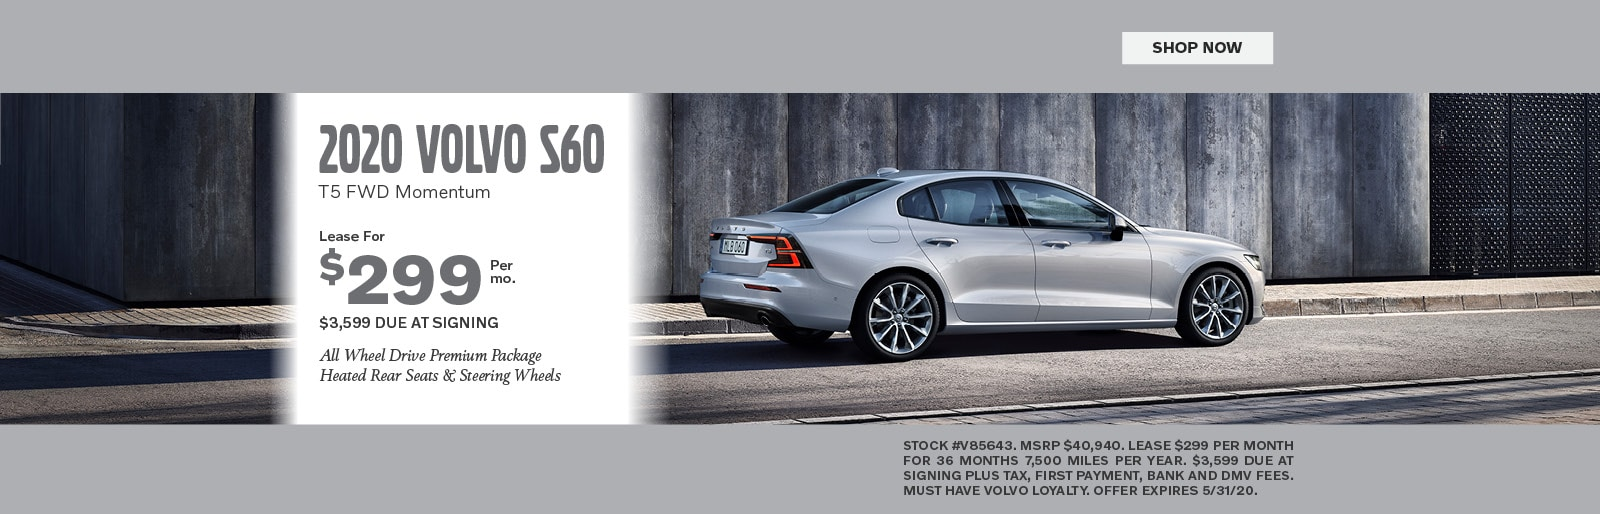 Karp Volvo Cars in Rockville Centre, NY | New and Used ...